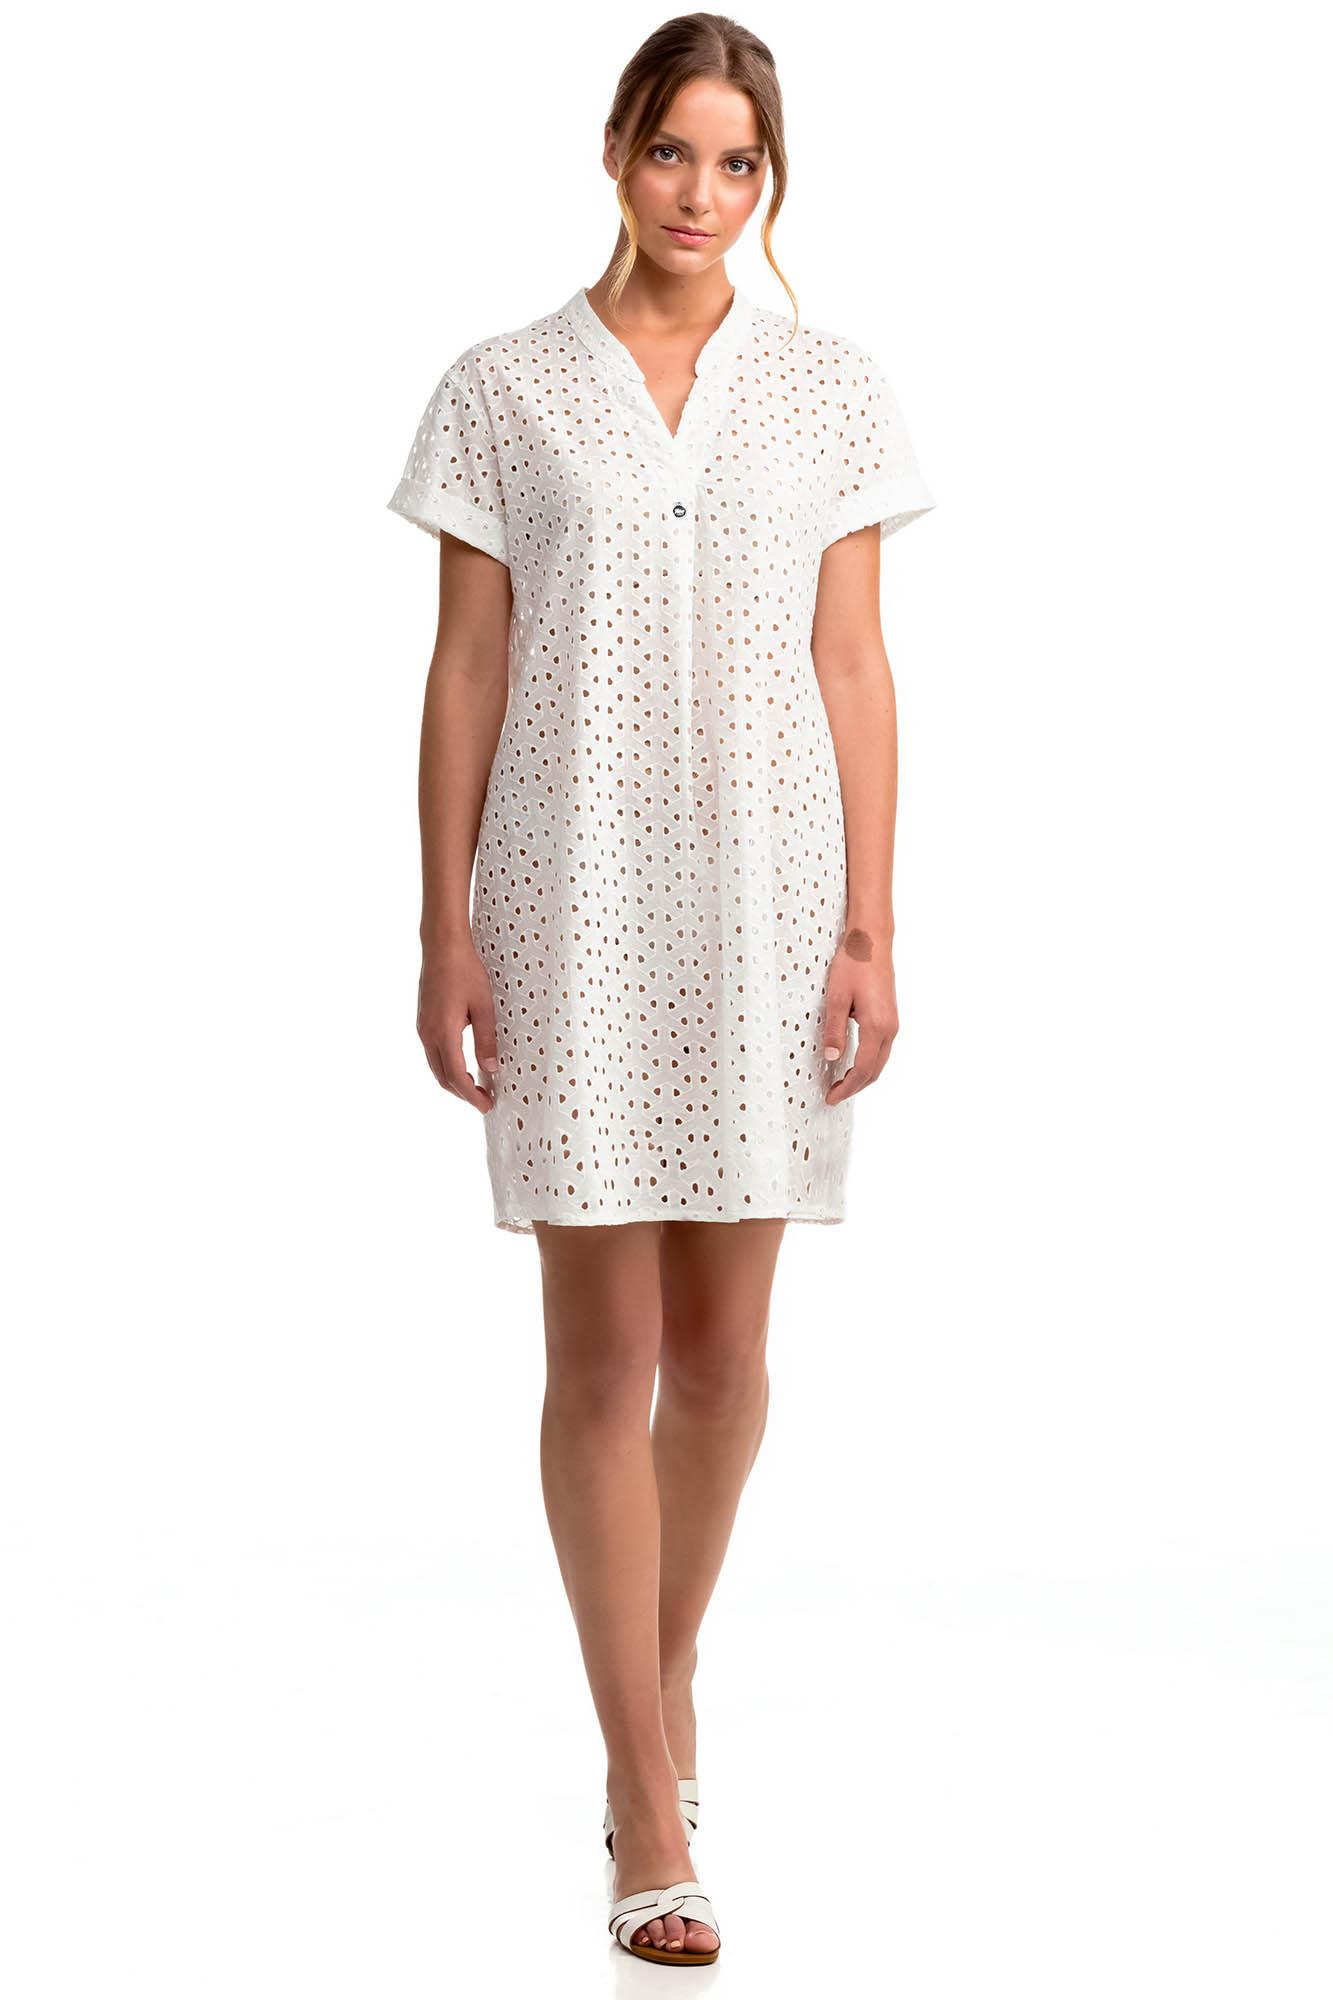 Short-Sleeved Jacquard Dress